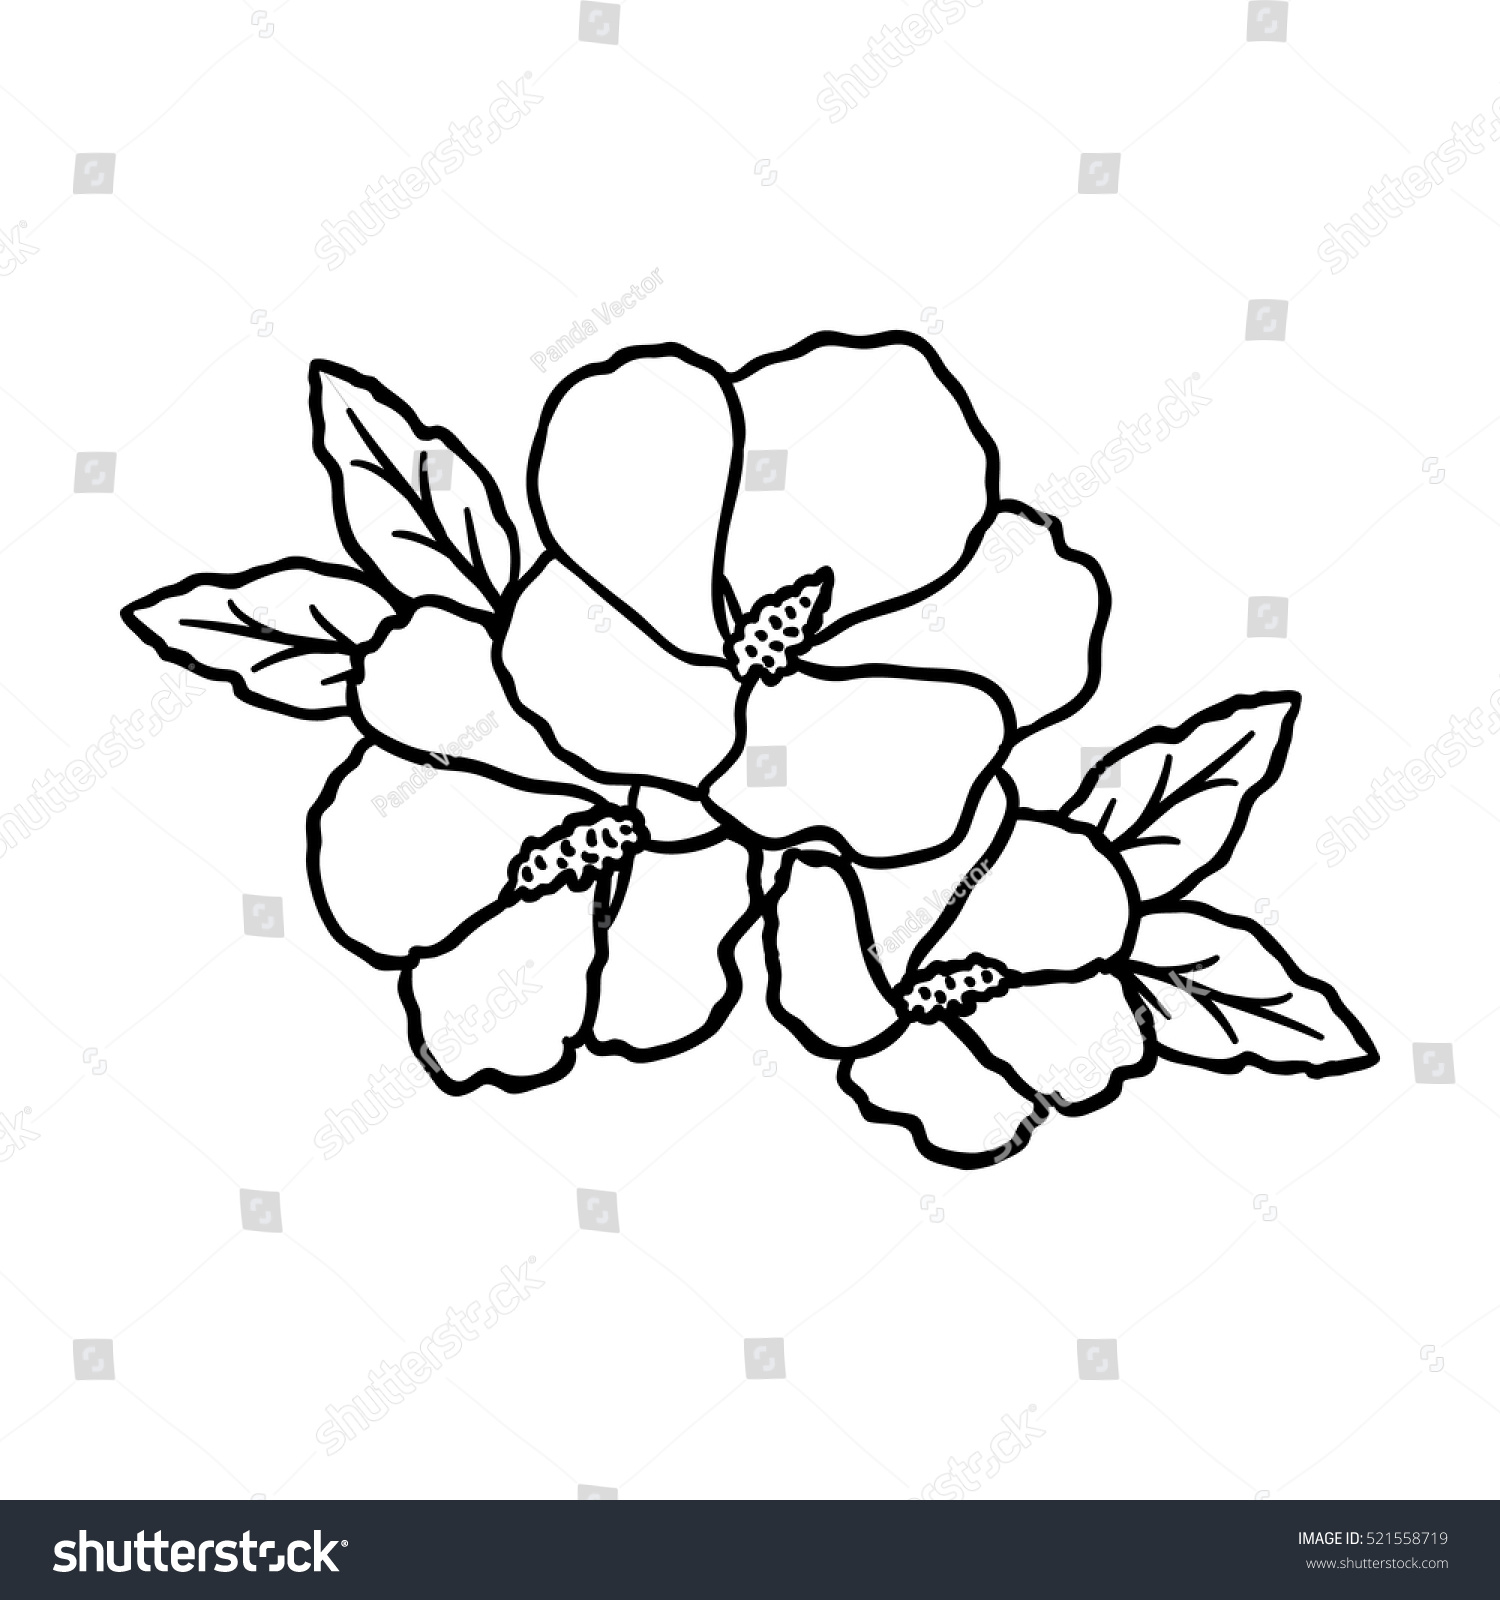 South korea coloring book - Rose Of Sharon Icon In Outline Style Isolated On White Background South Korea Symbol Stock